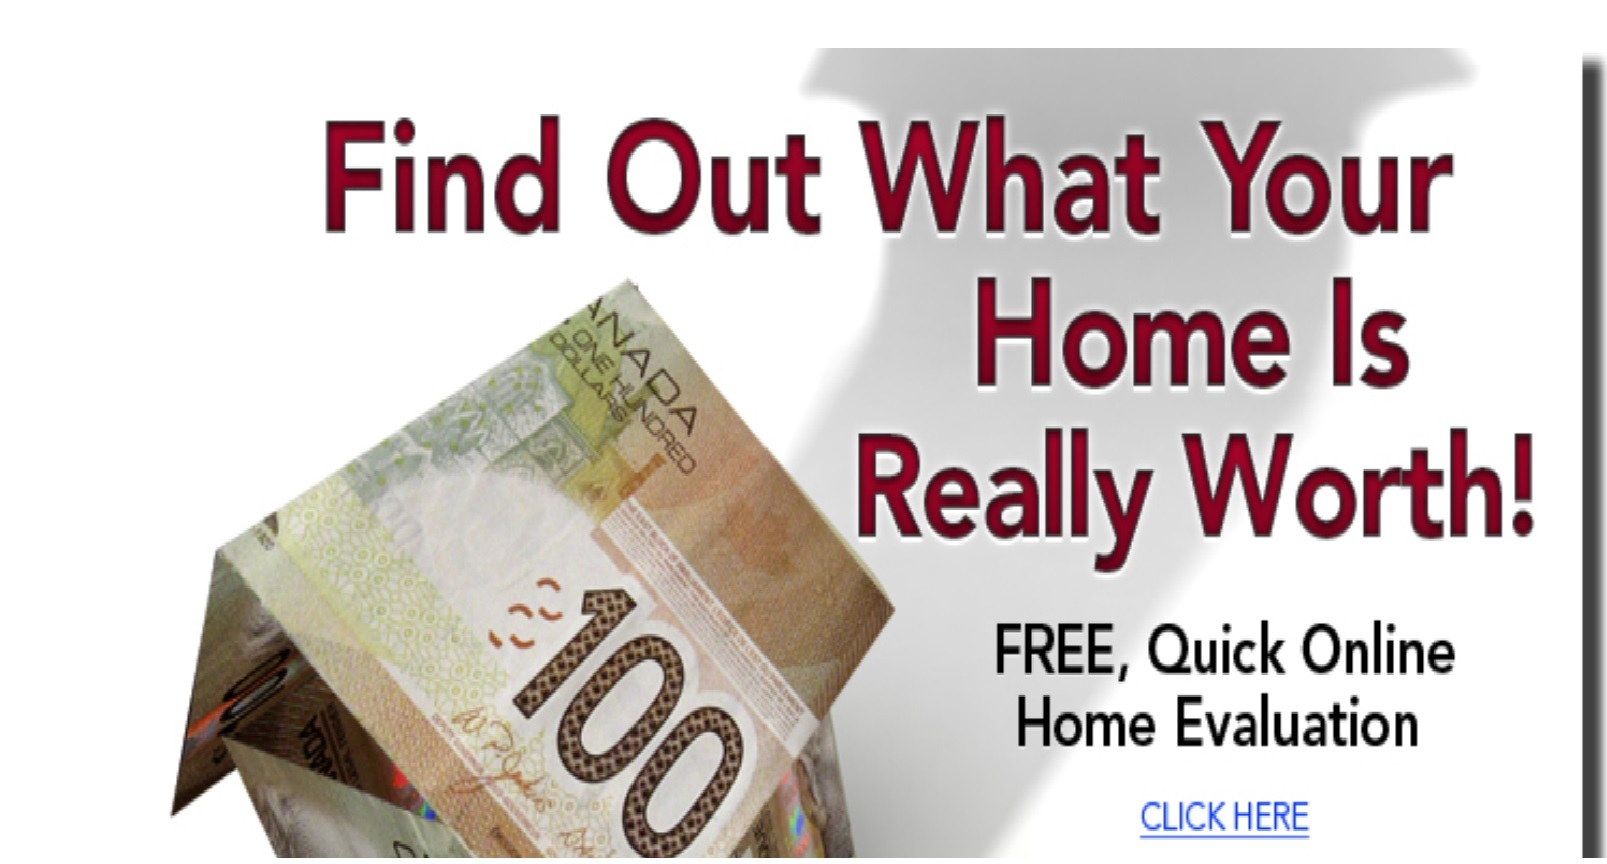 find out your home worth.jpg